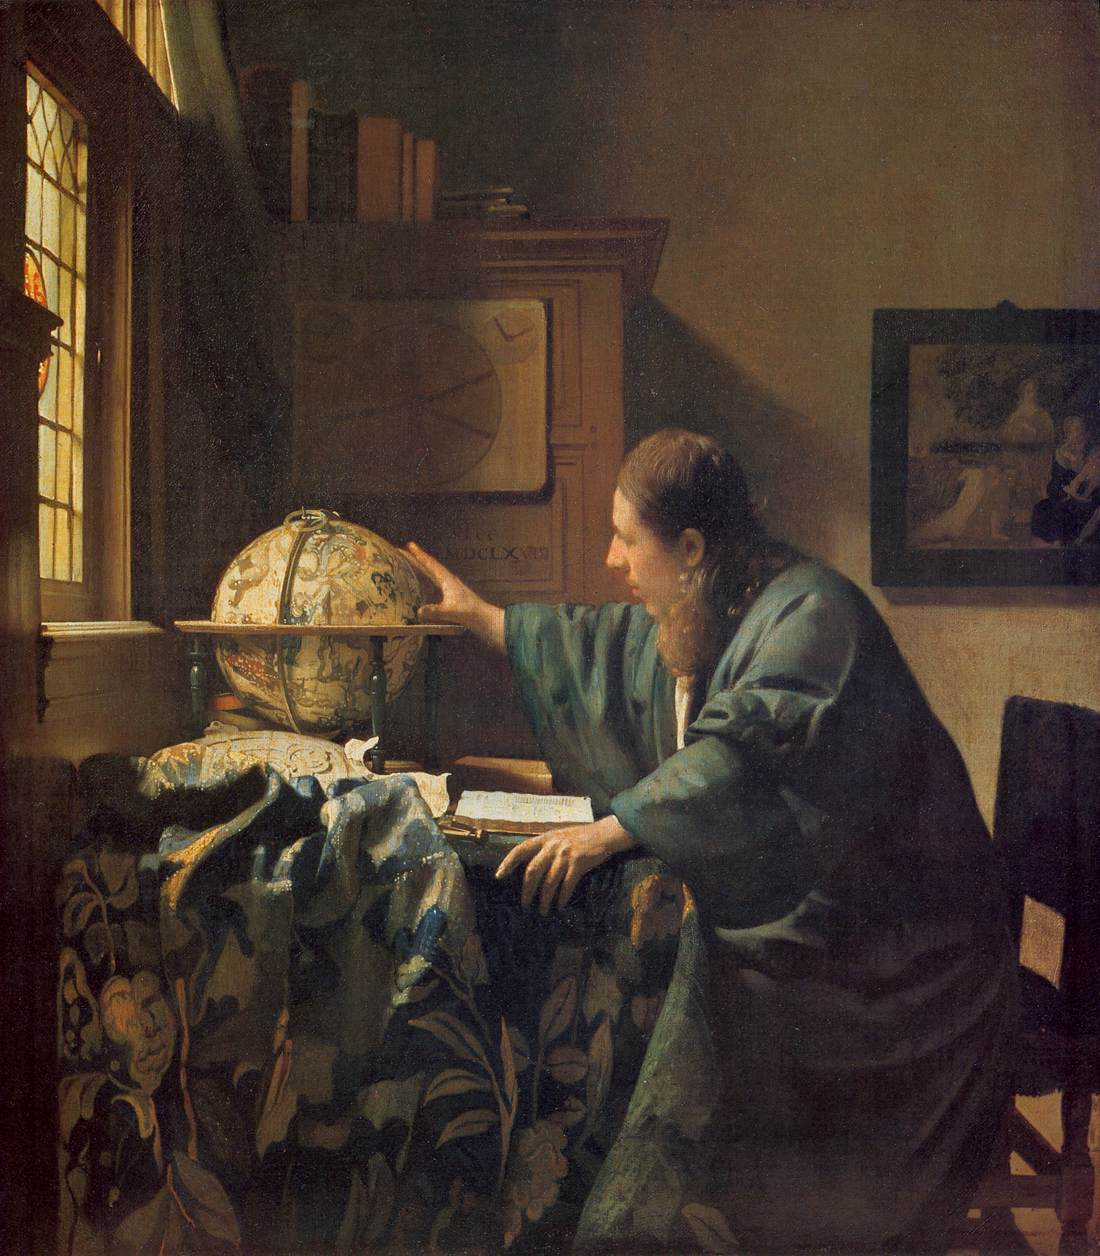 vermeer_the_astronomer.jpg